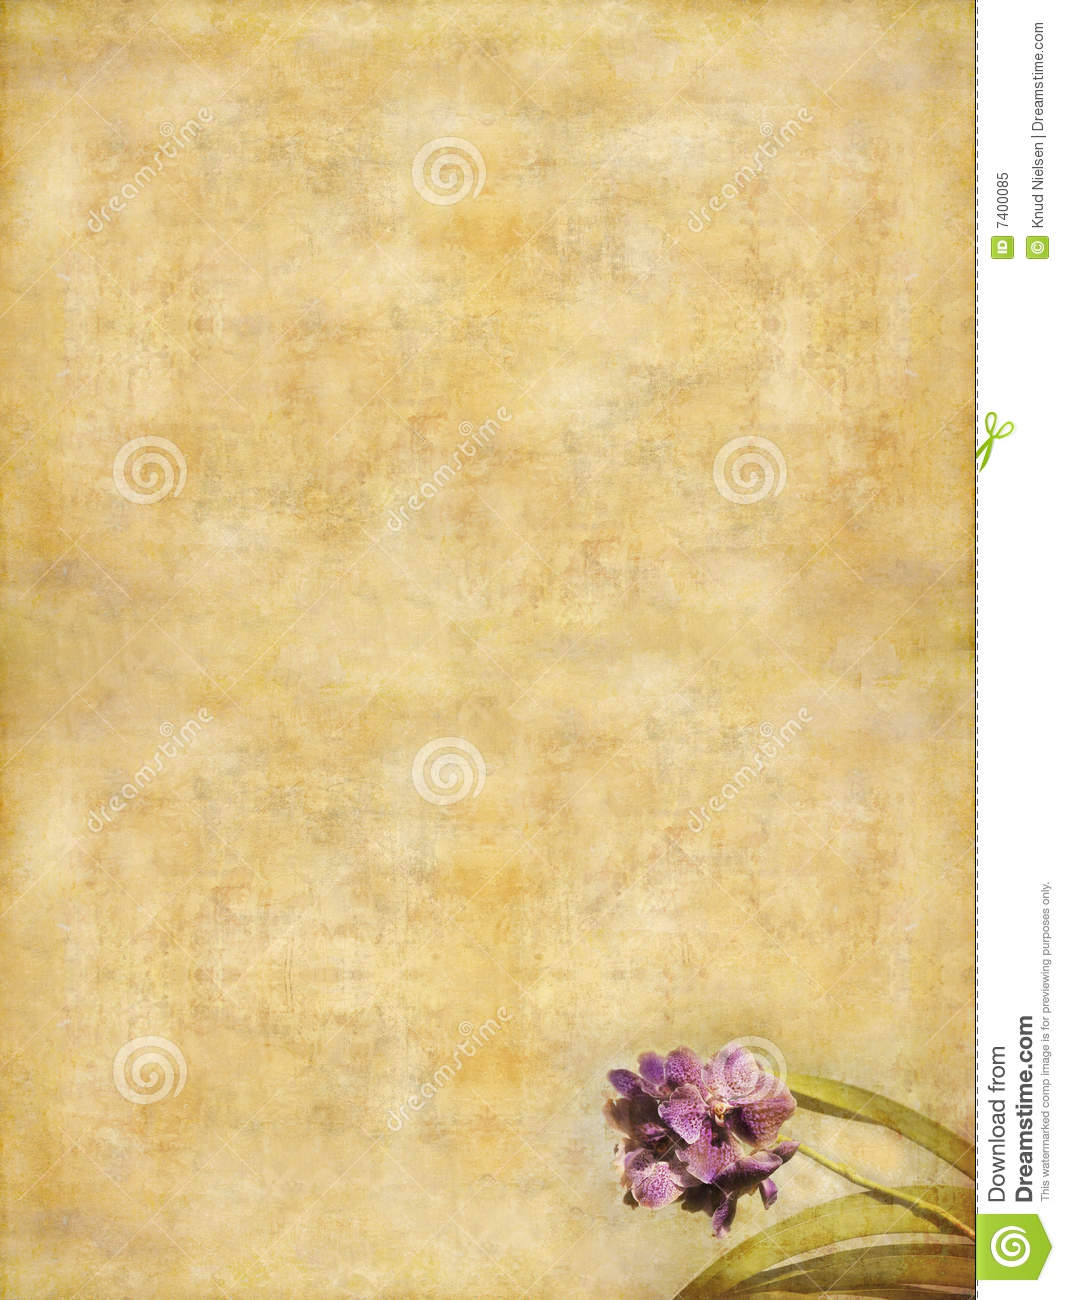 vintage writing paper royalty stock photo image 7400085 vintage writing paper